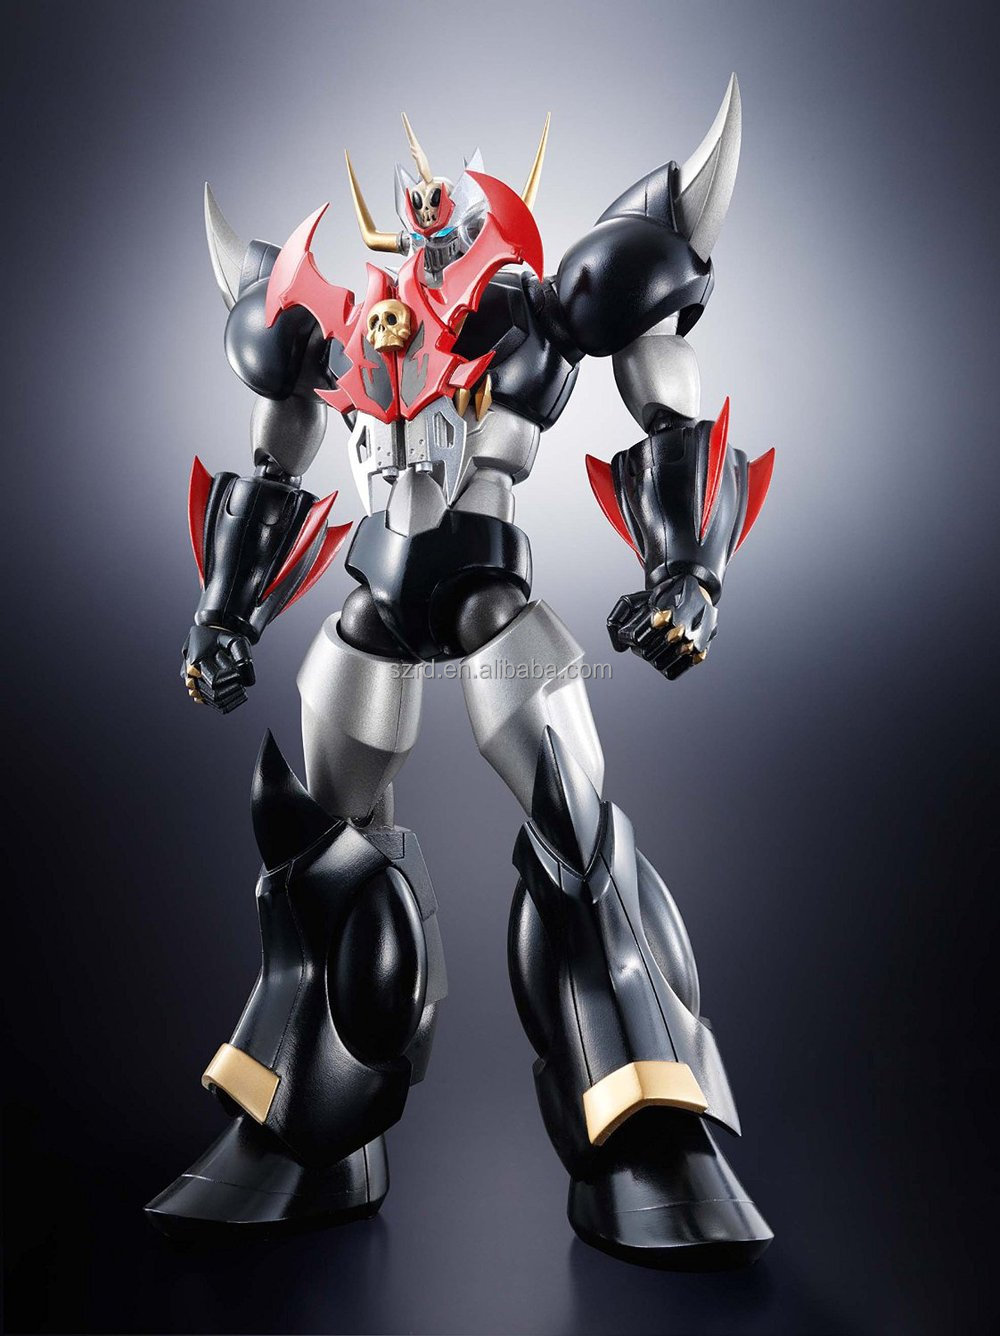 18 cm gundam action figure/bandai plastic 3d action figure/custom action figure